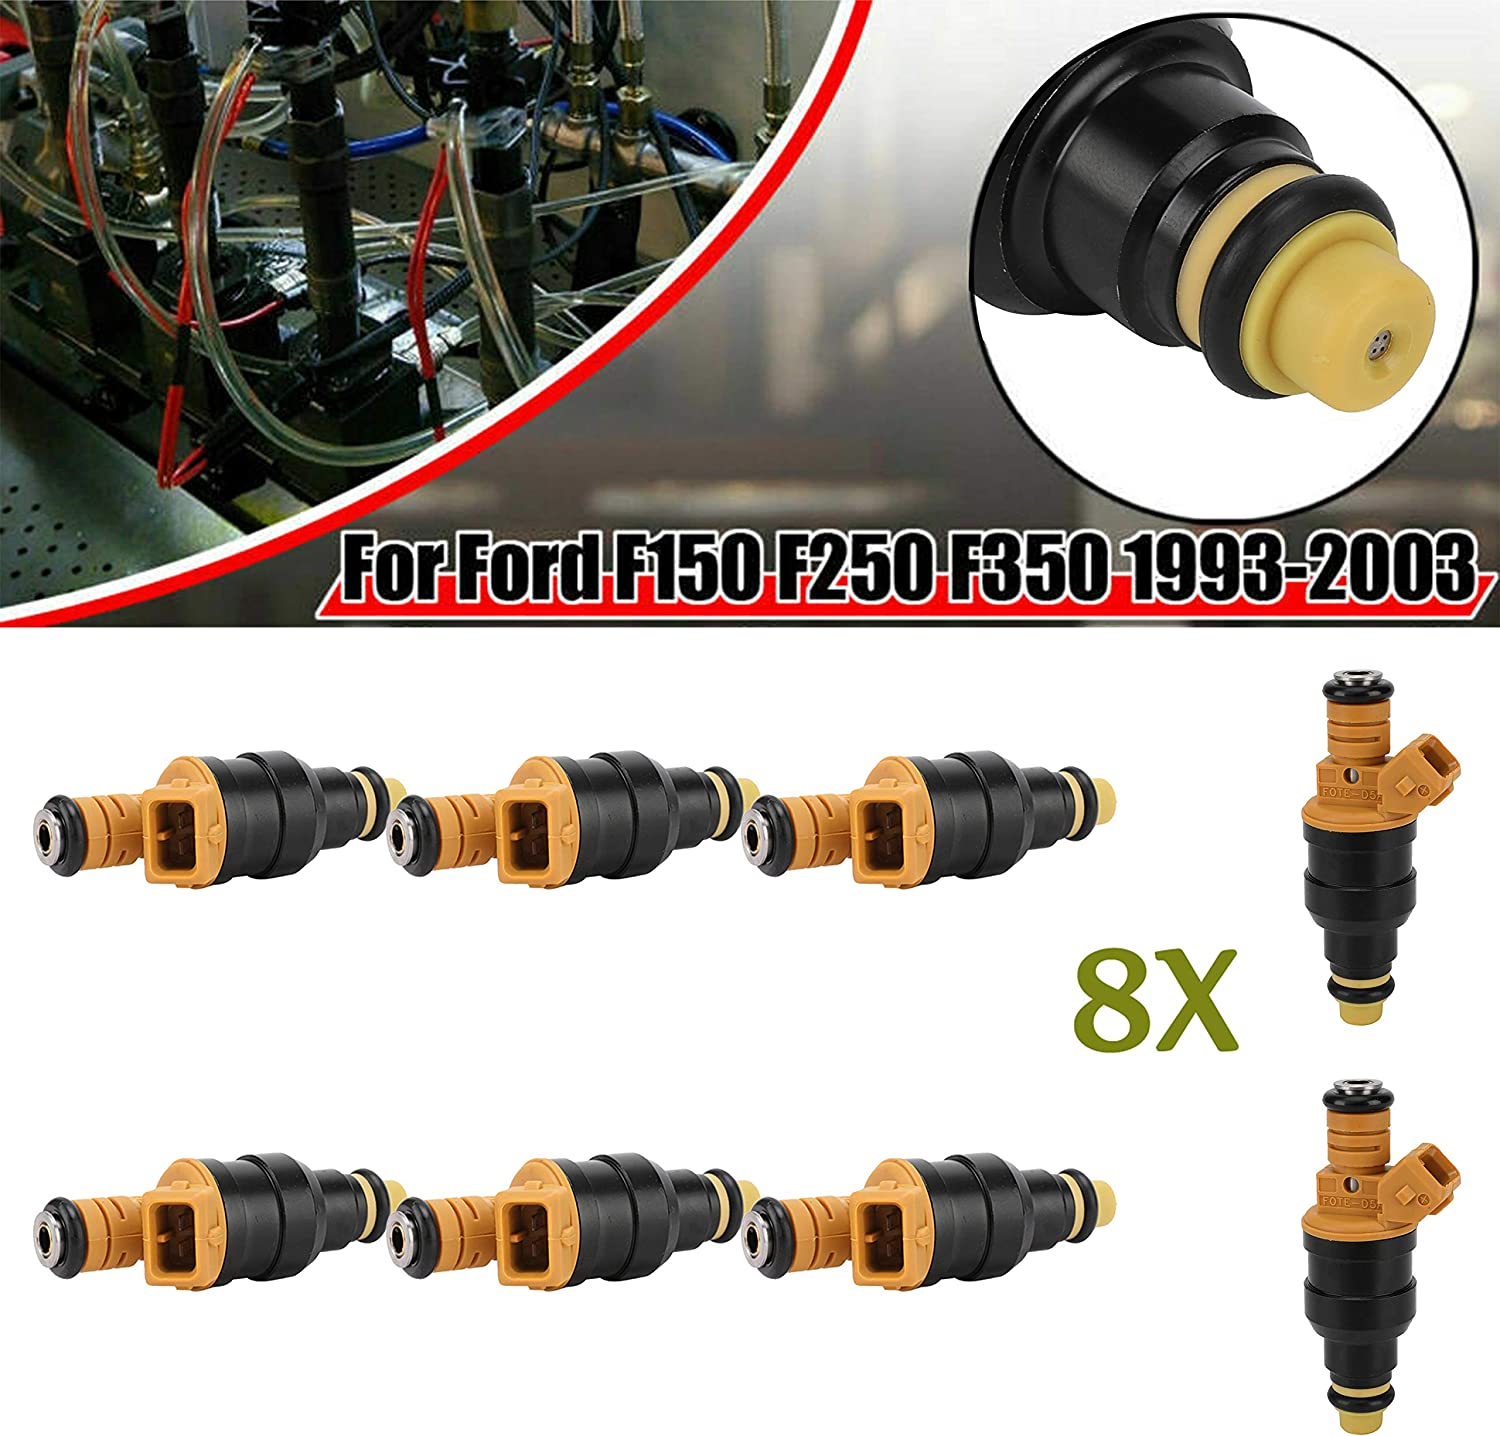 8 Pack Fuel Injectors,8PCS Fuel Injector Set,Replaces 0280150556 0280150943,for Ford F150 F250 F350 E150 E250 Mustang Expedition Lincoln Mercury /& More,